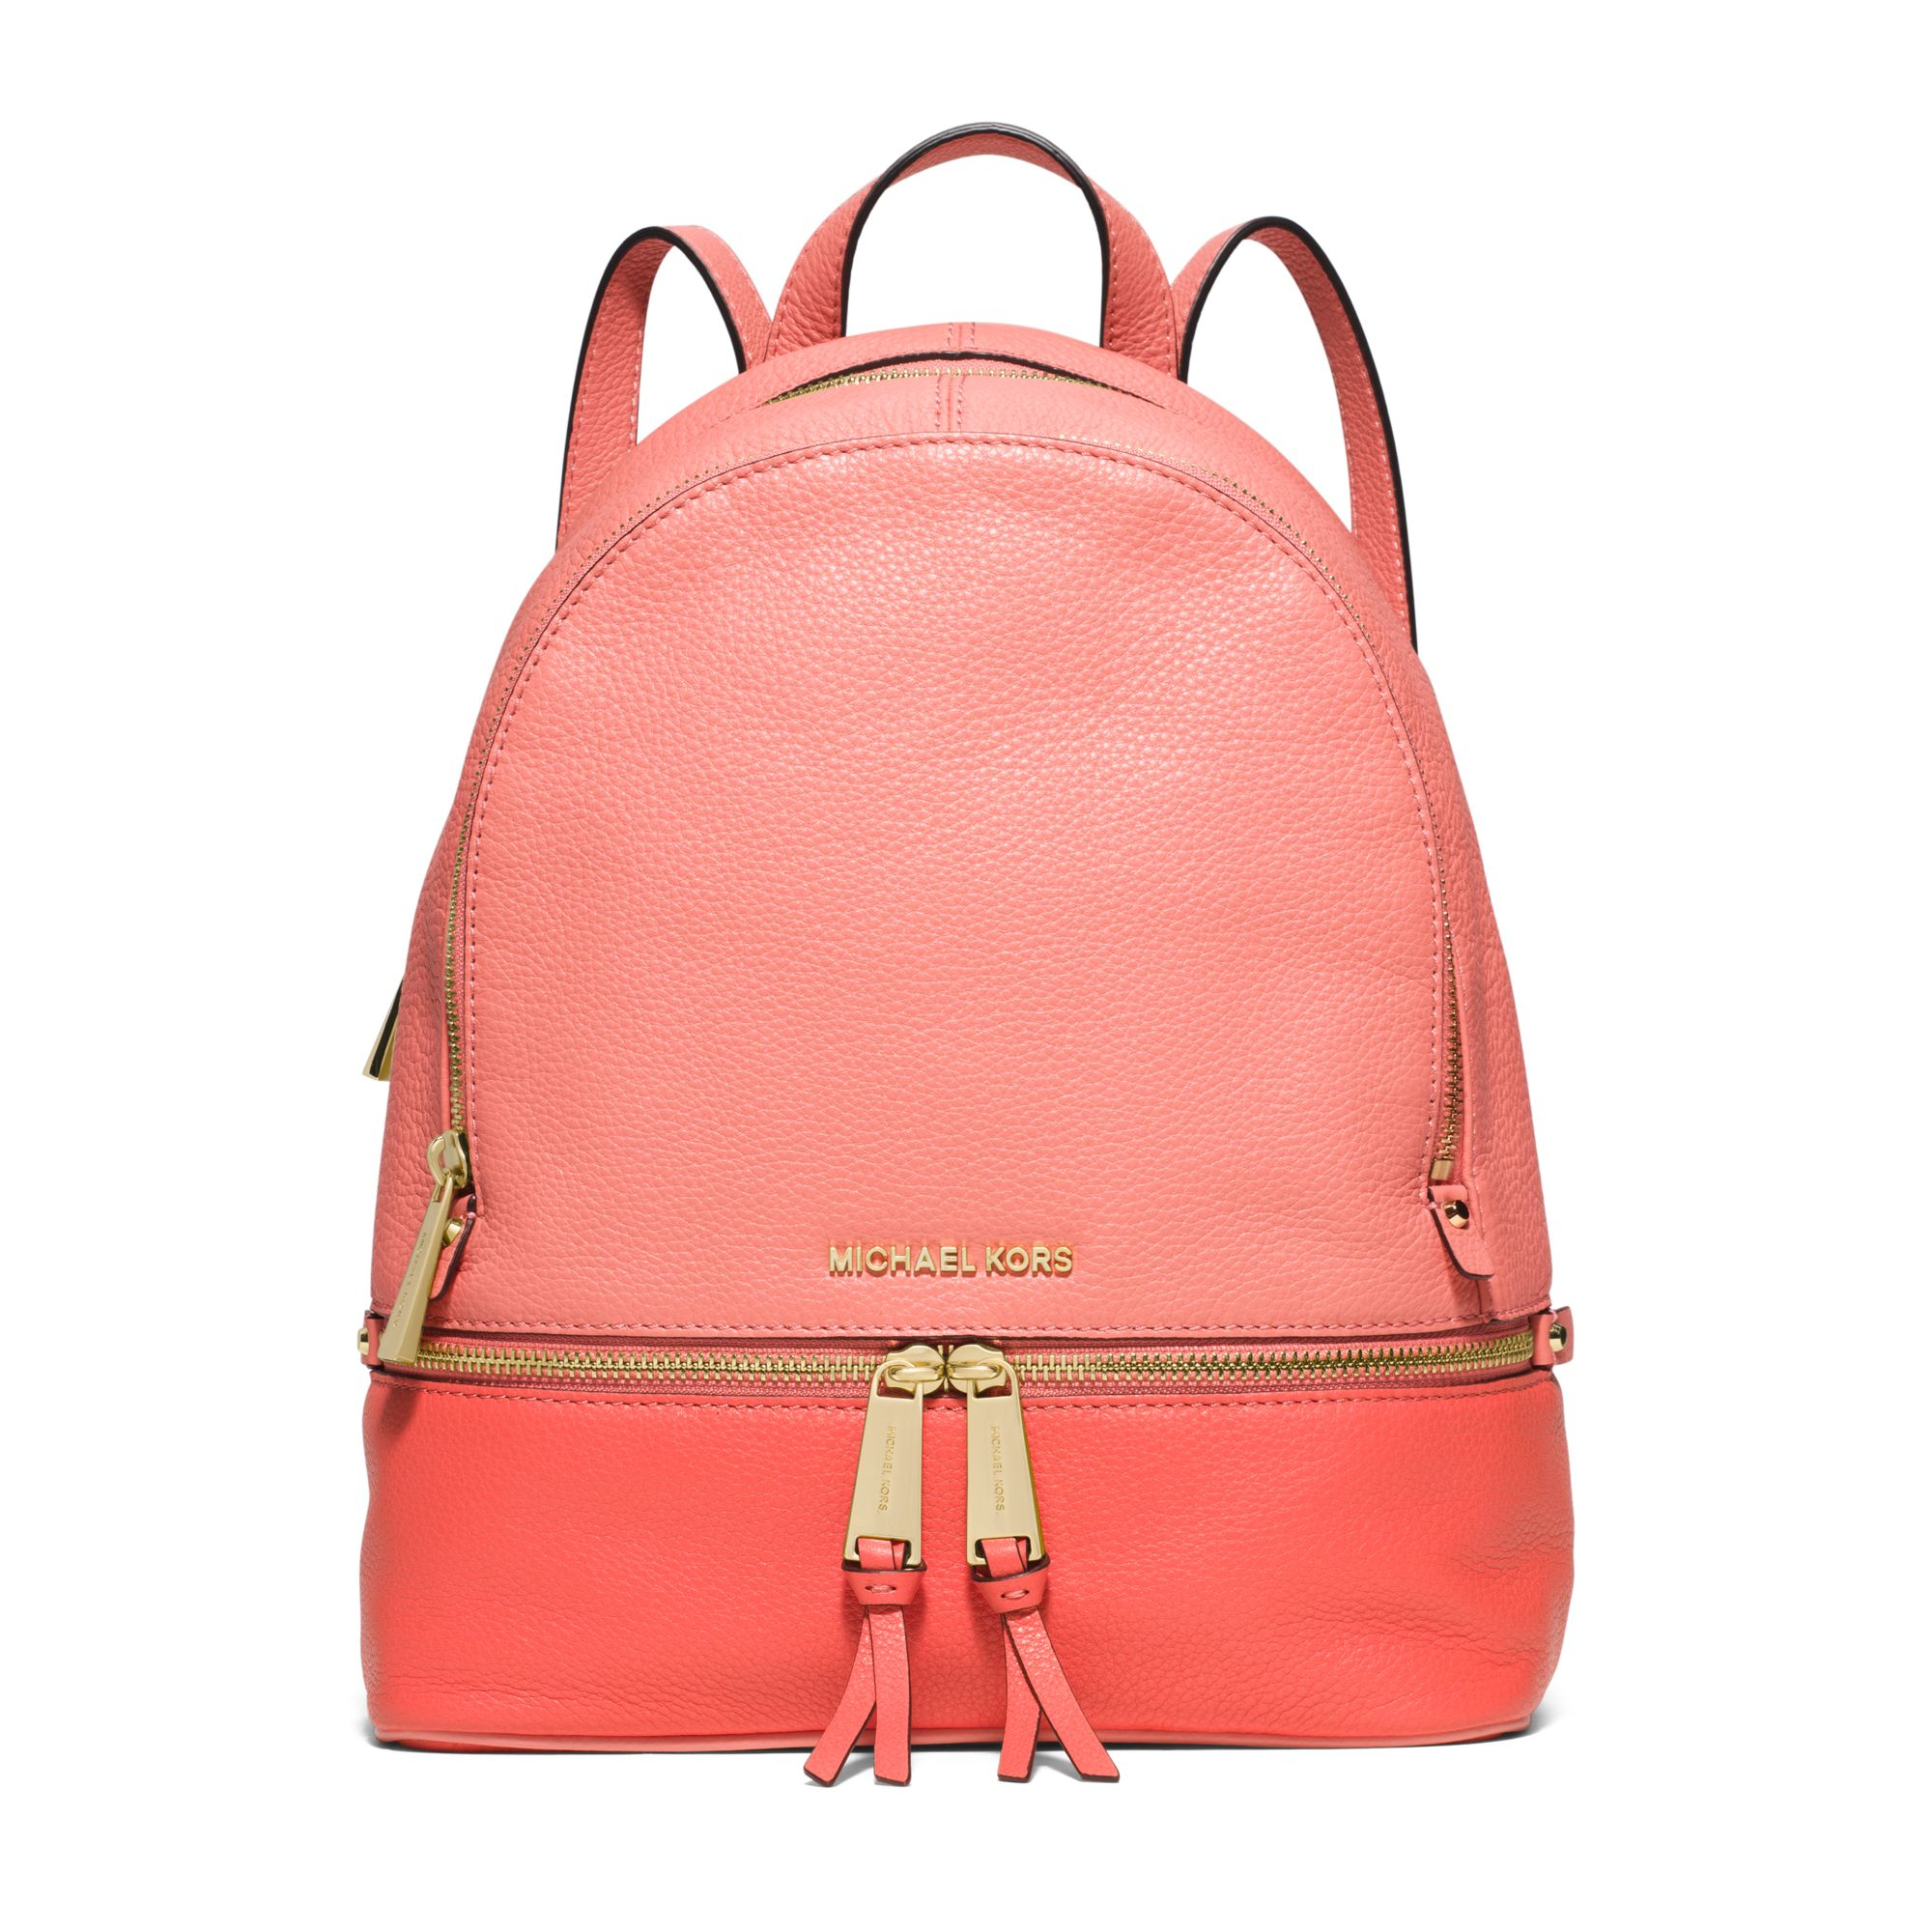 e11acda983a0 Lyst - Michael Kors Rhea Medium Color-block Leather Backpack in Pink